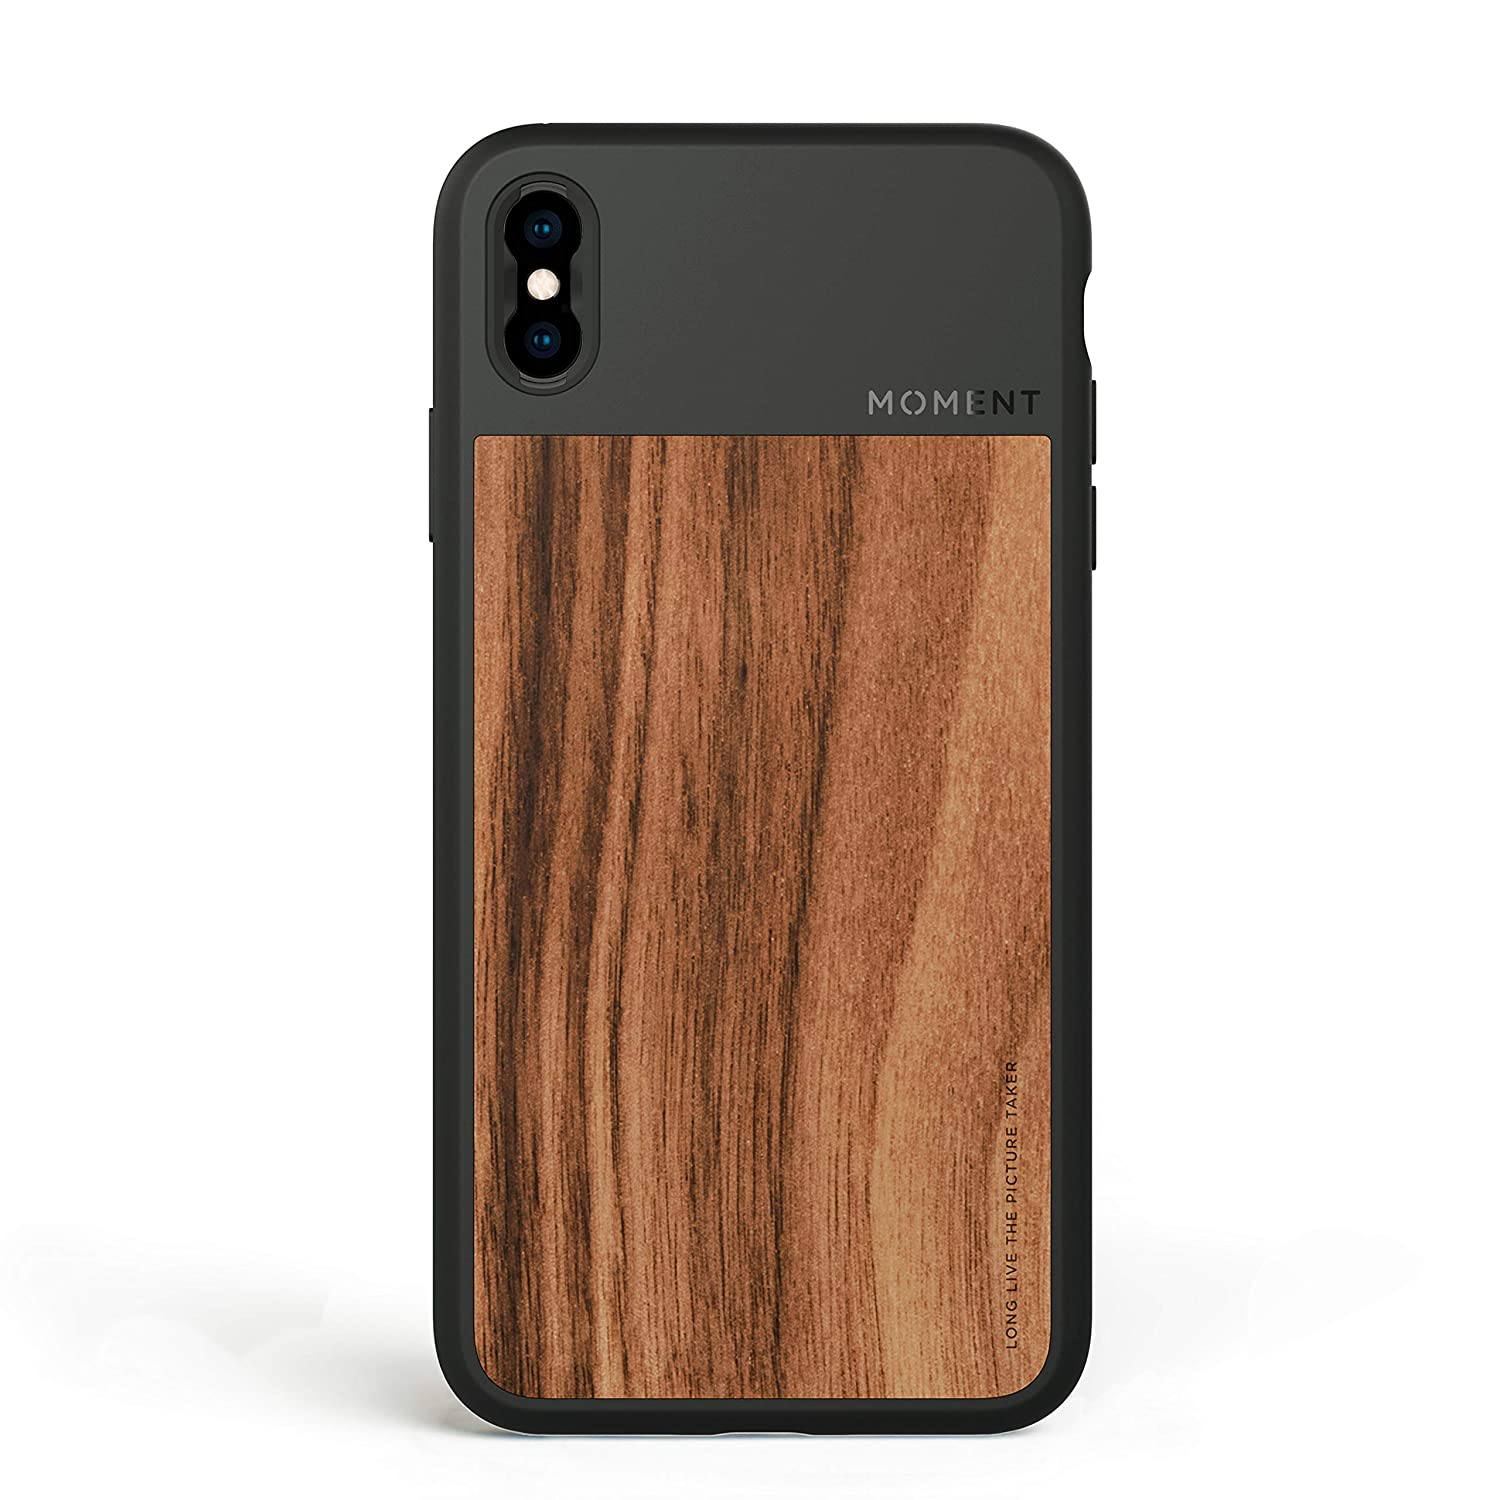 outlet store 6caad 54e3a iPhone Xs Max Case || Moment Photo Case in Walnut Wood - Thin, Protective,  Wrist Strap Friendly case for Camera Lovers.